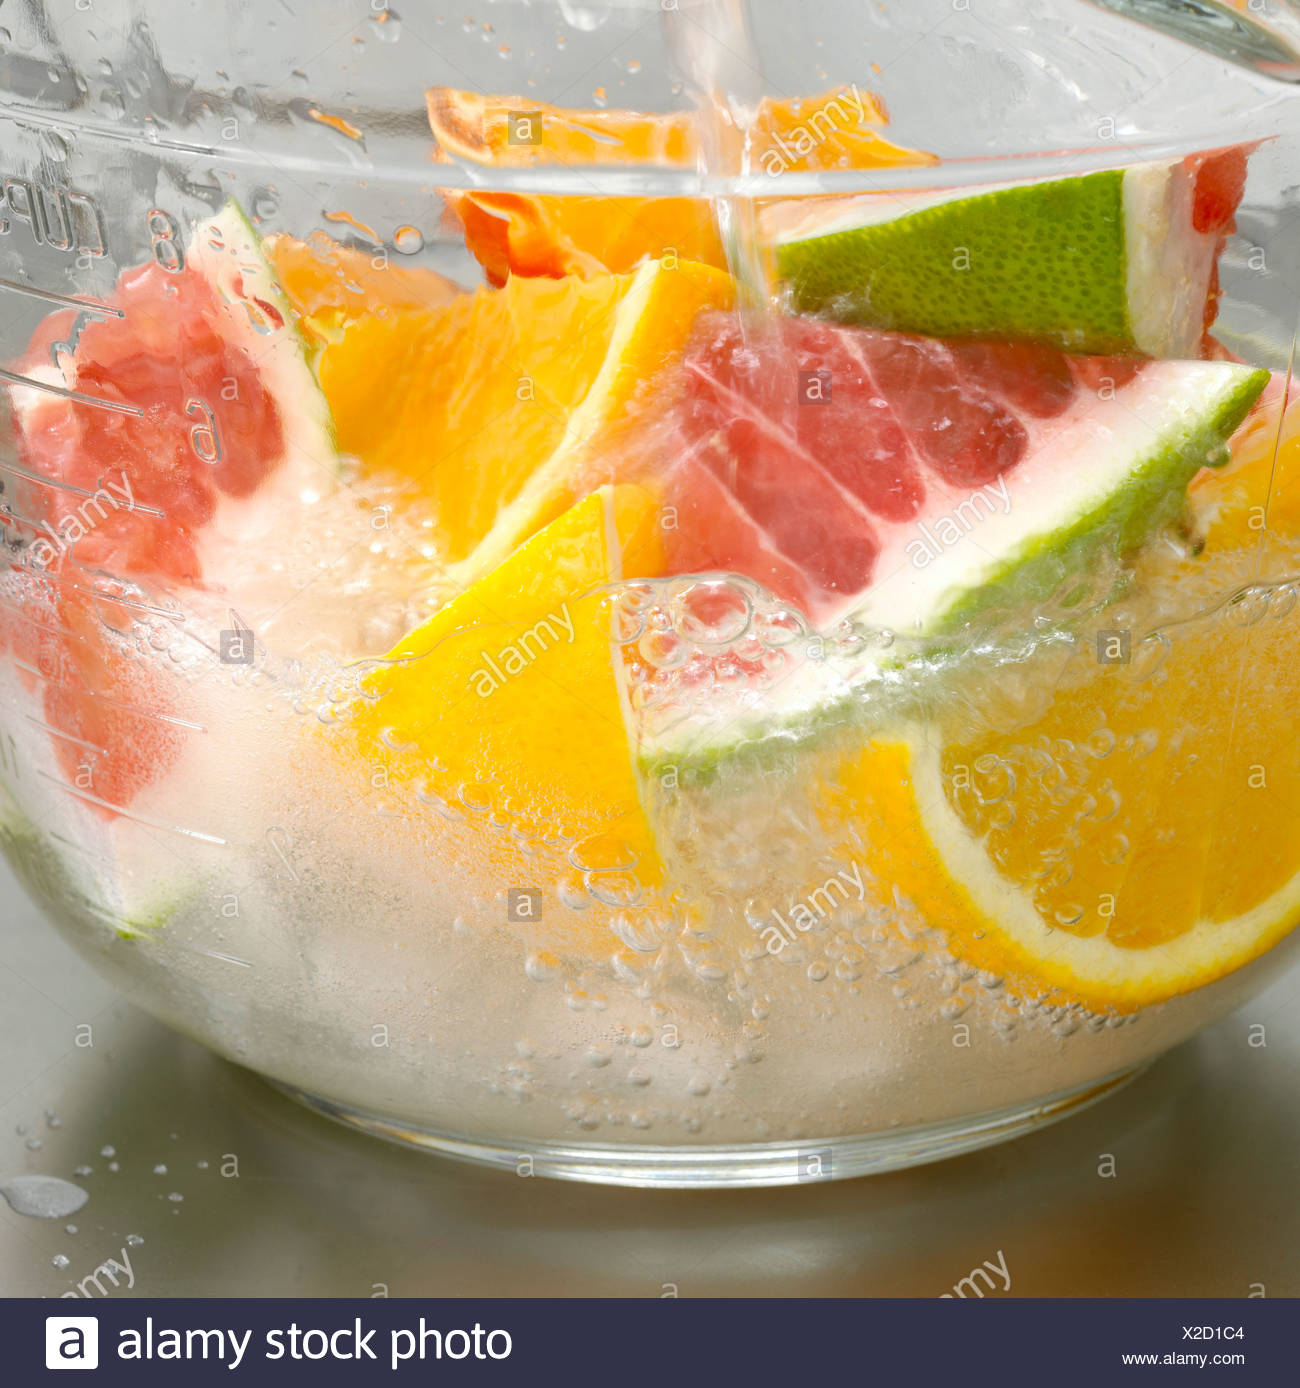 Sliced fruits in bowl, close-up - Stock Image